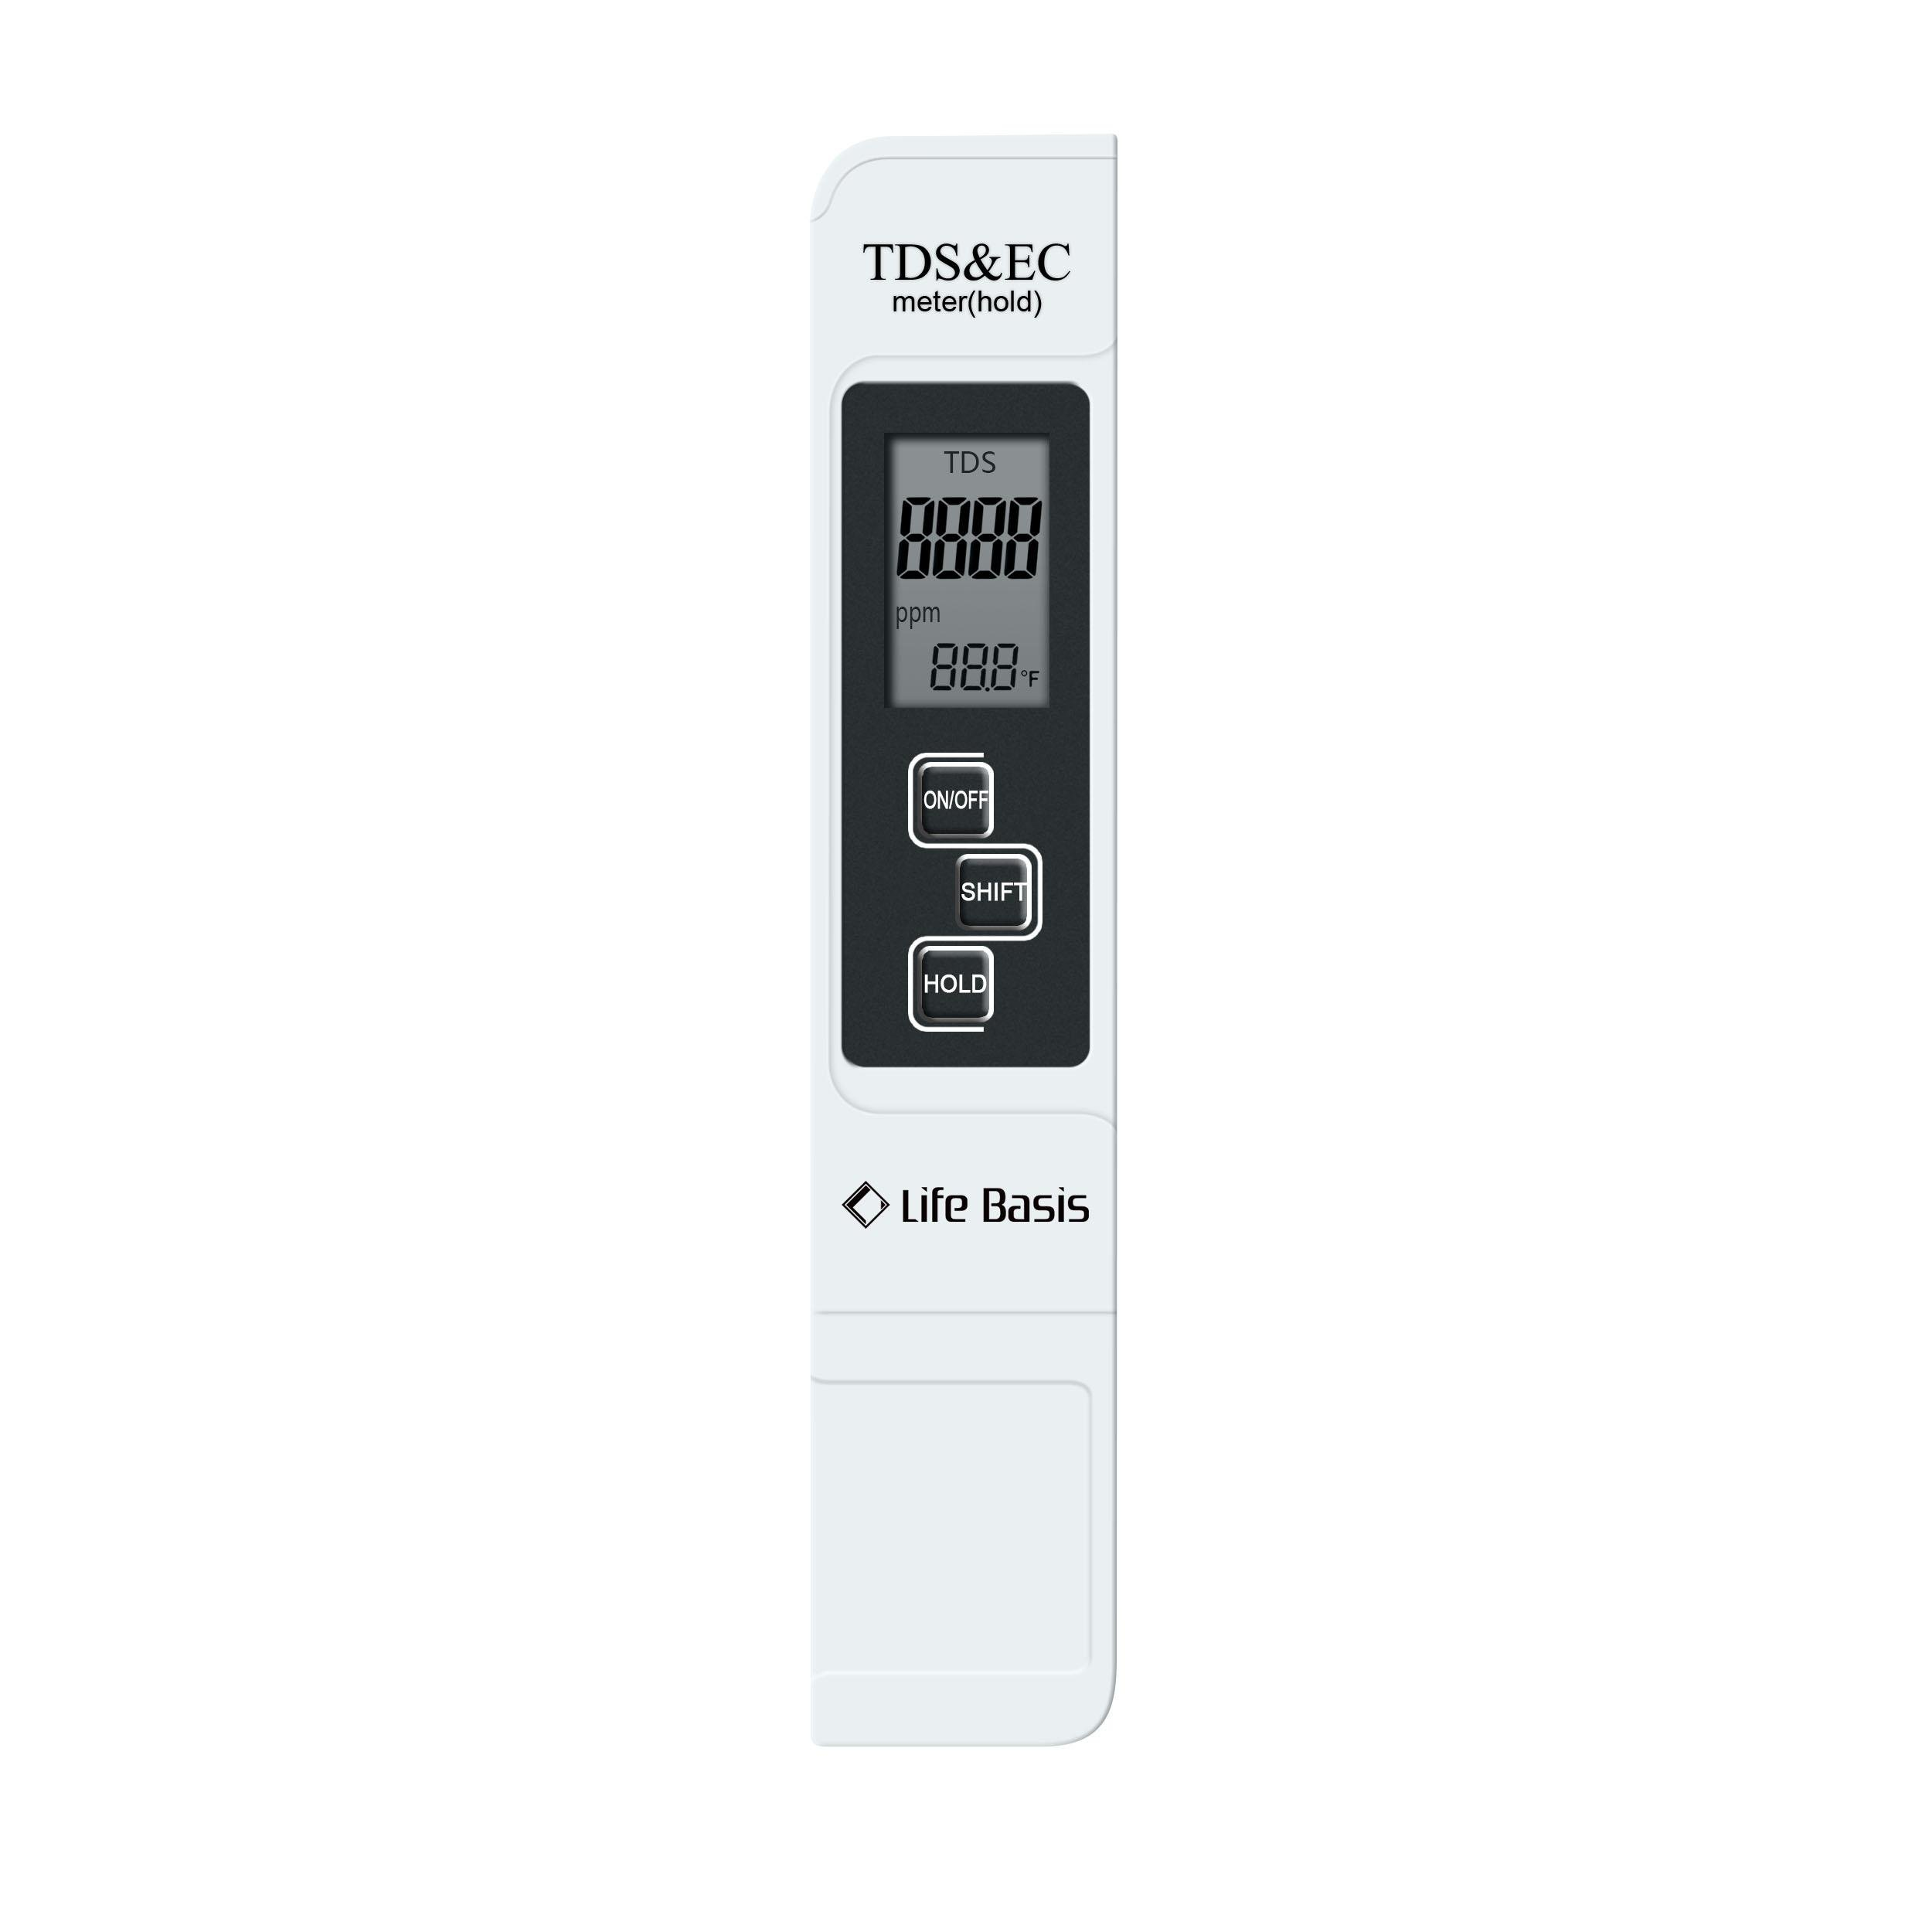 Professional Quality TDS, EC & Temperature Meter, Life Basis Water Quality Test Meter, 0-9990pm.-Ideal for Drinking Water, Aquariums, Premium Protective Leather Case